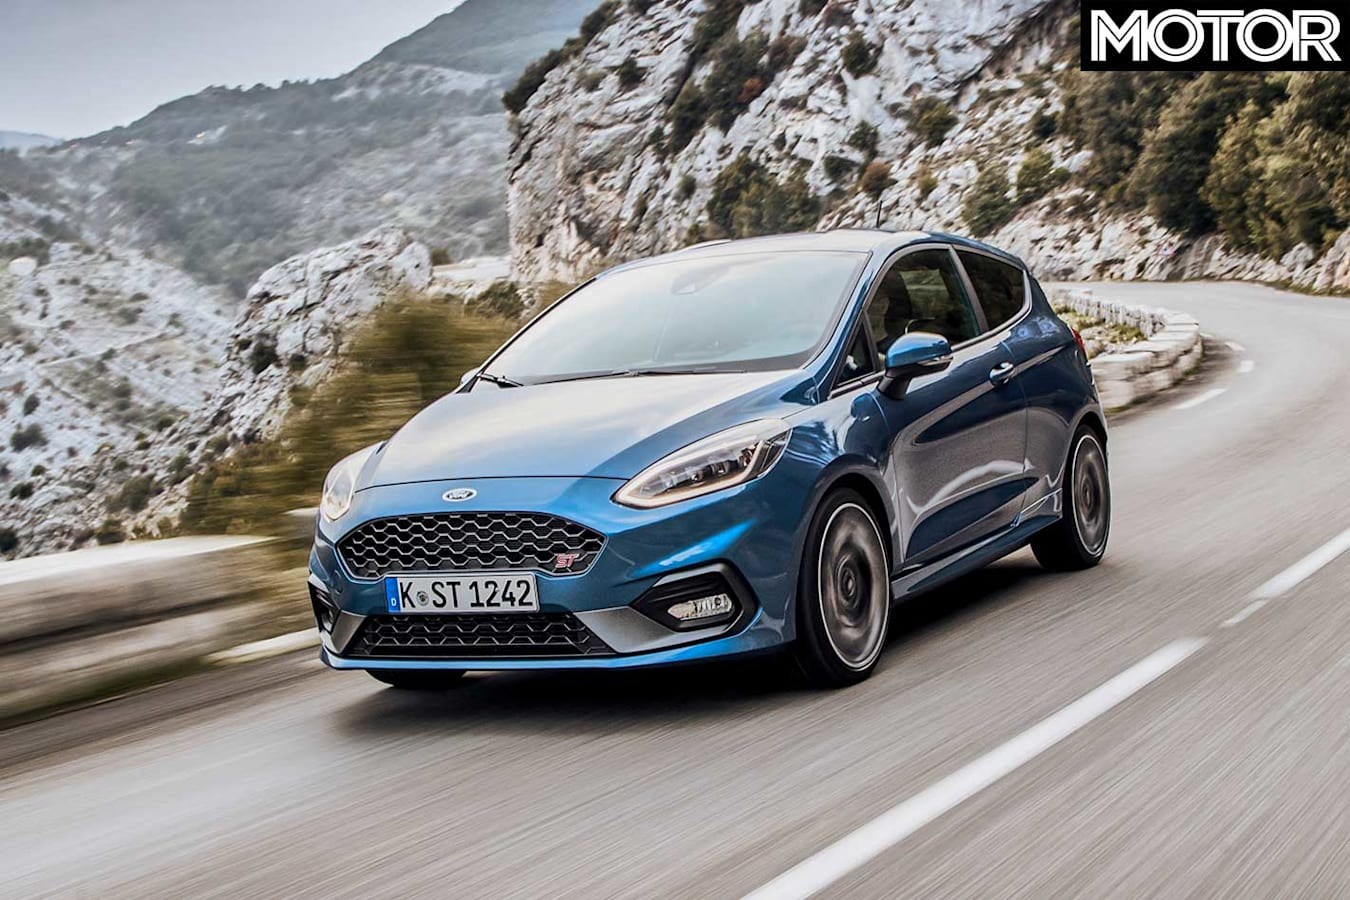 2018 Ford Fiesta St Performance Review Front Dynamic Jpg